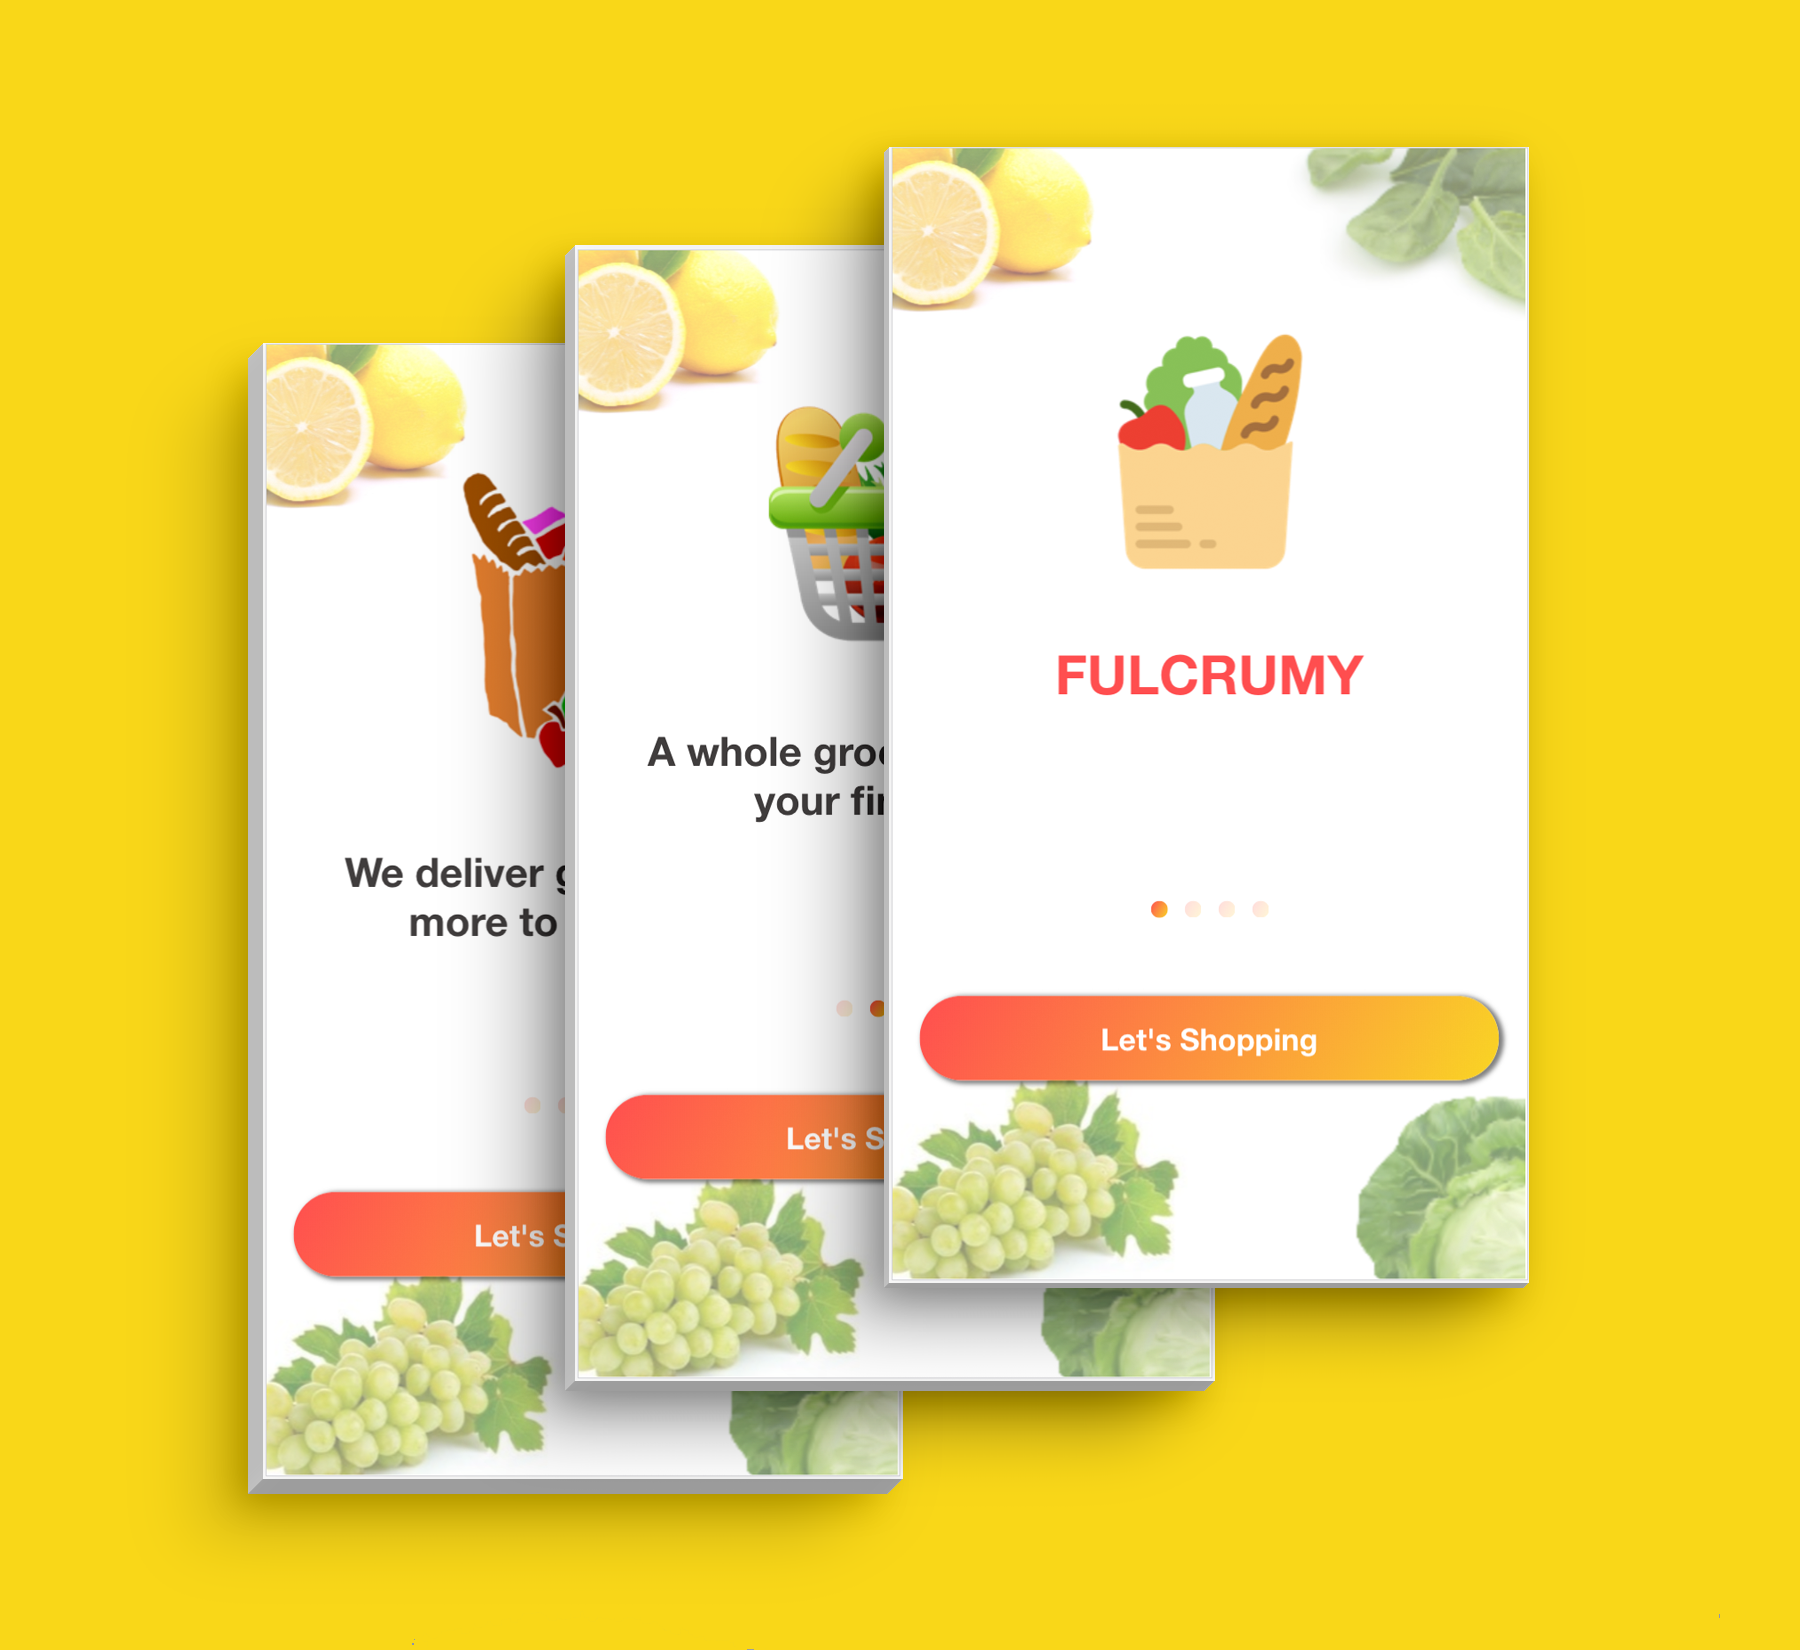 Complete Multipurpose eCommerce Template UI Grocery App Supports Multiple Language i18n - 7